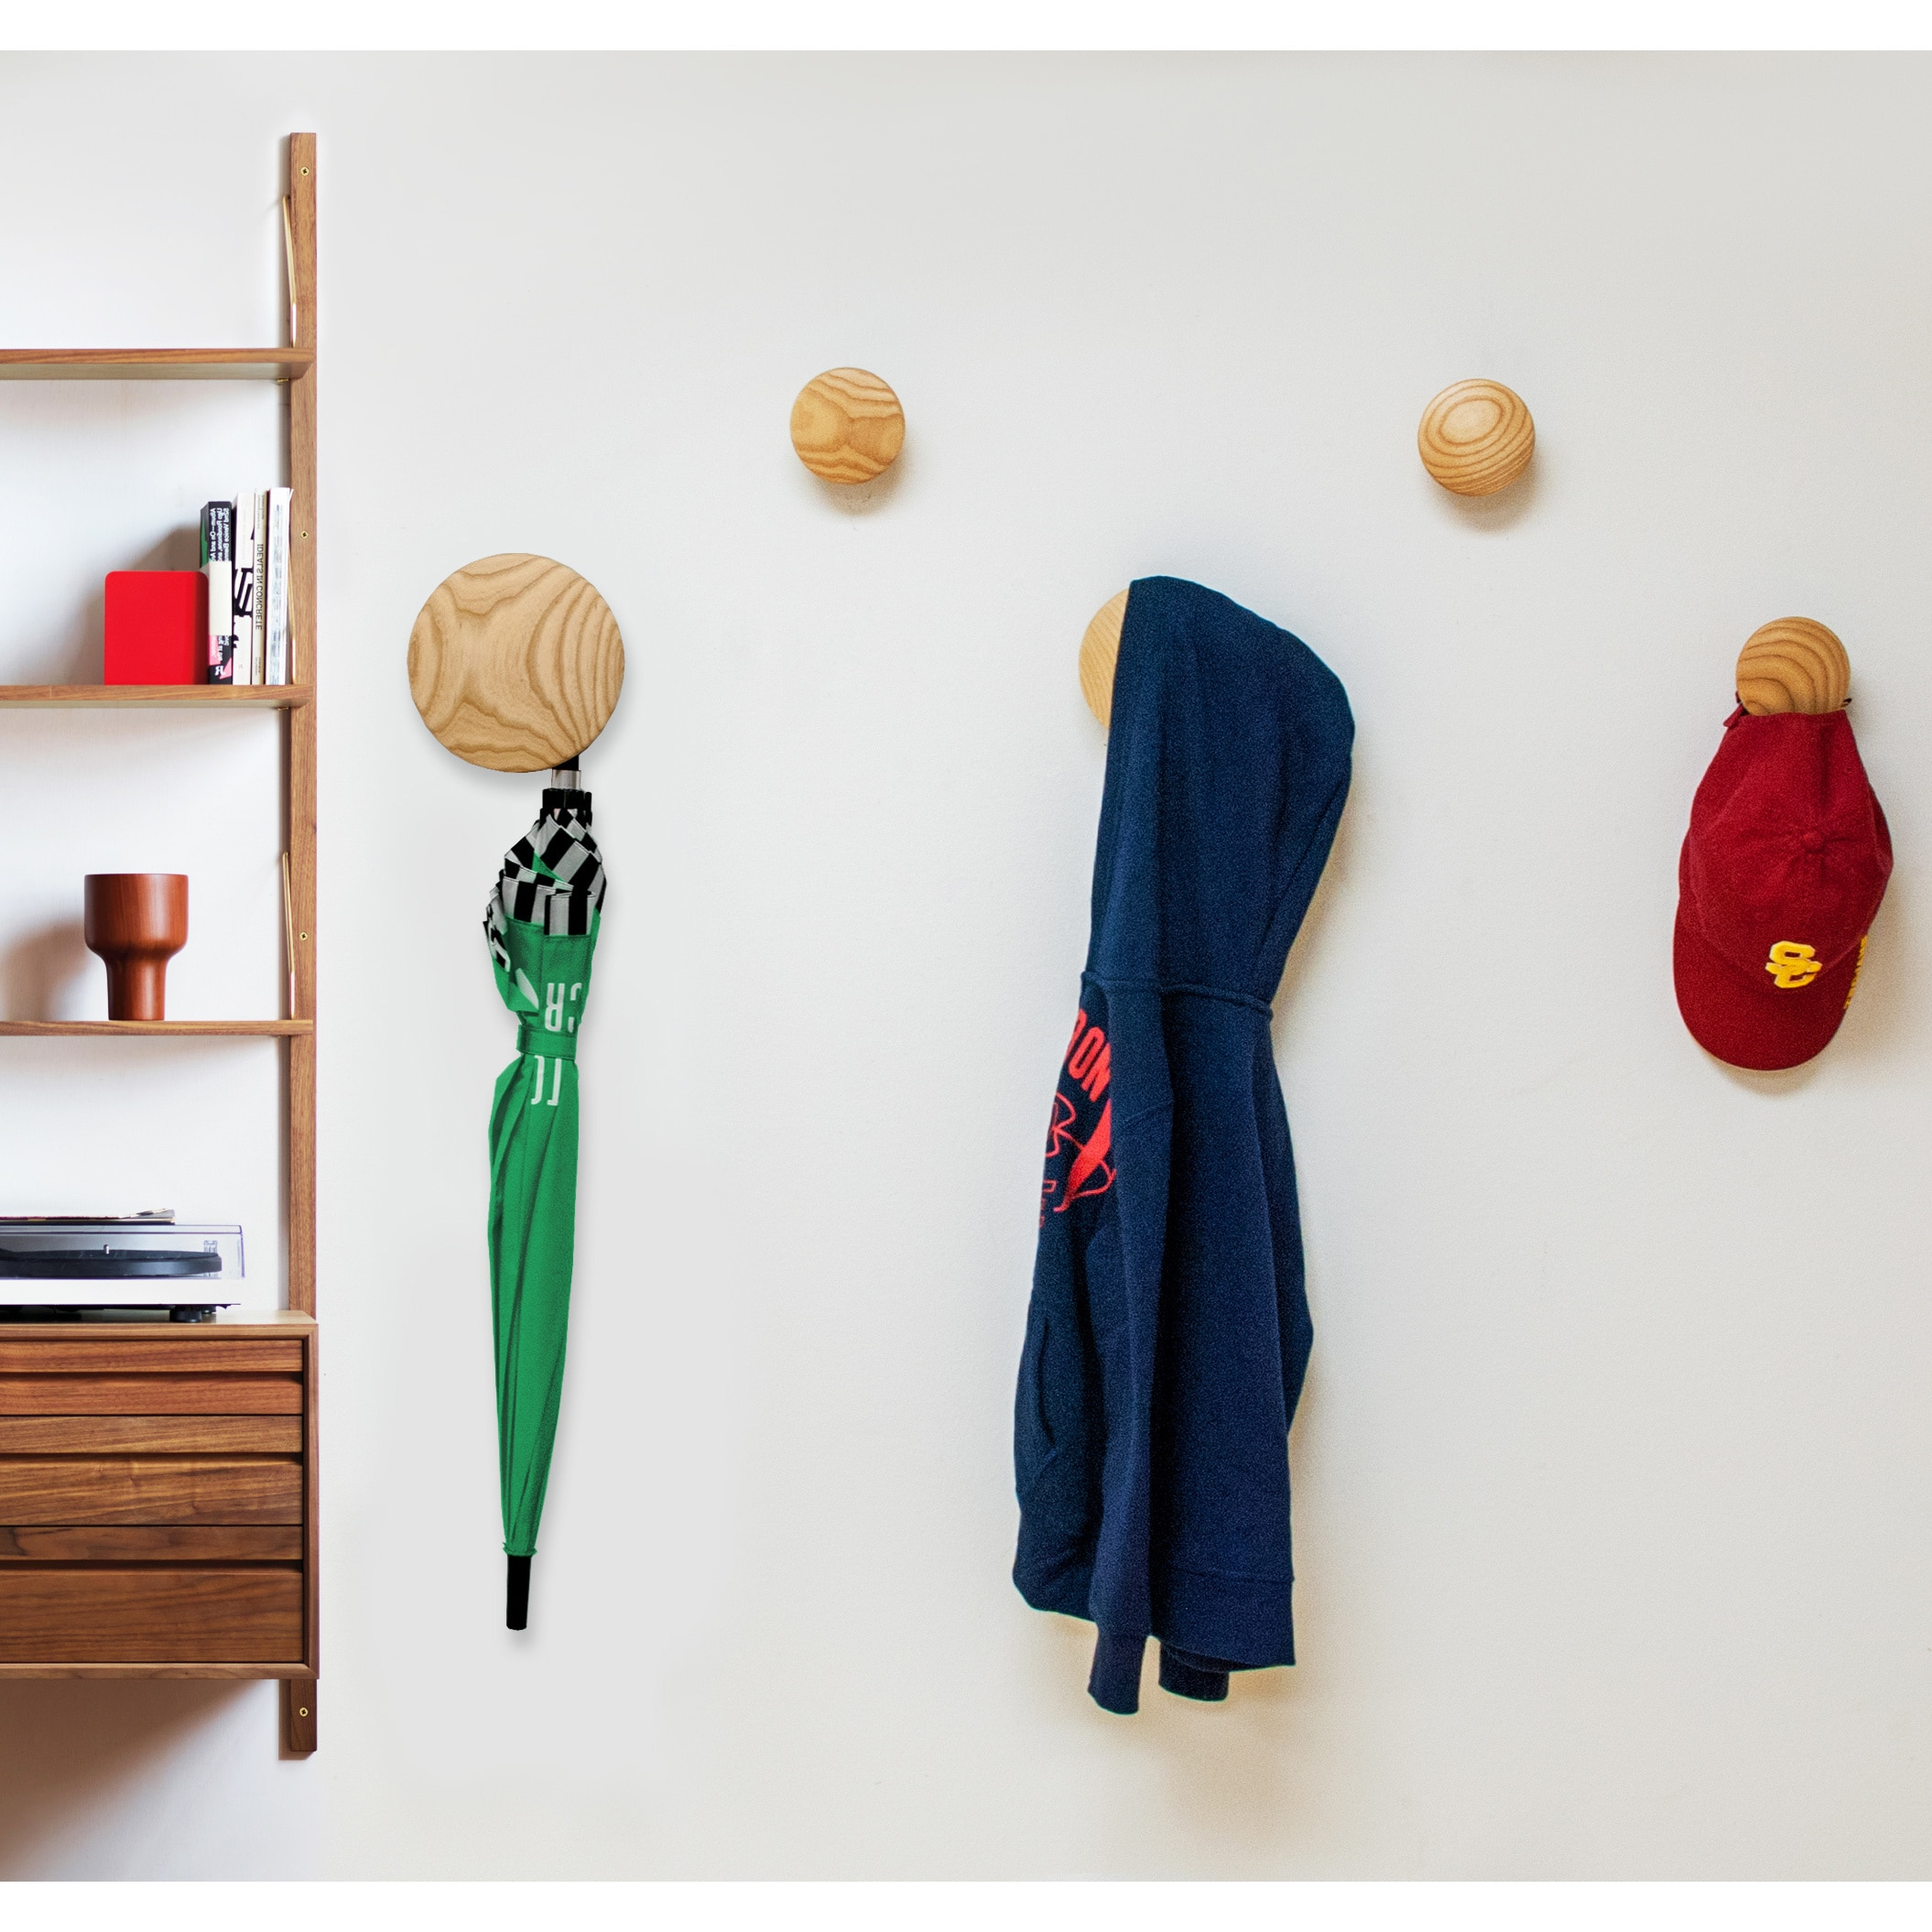 easy display l how decorative to wall hanging decor larger plates view rack holders plate the hangers picture for regal